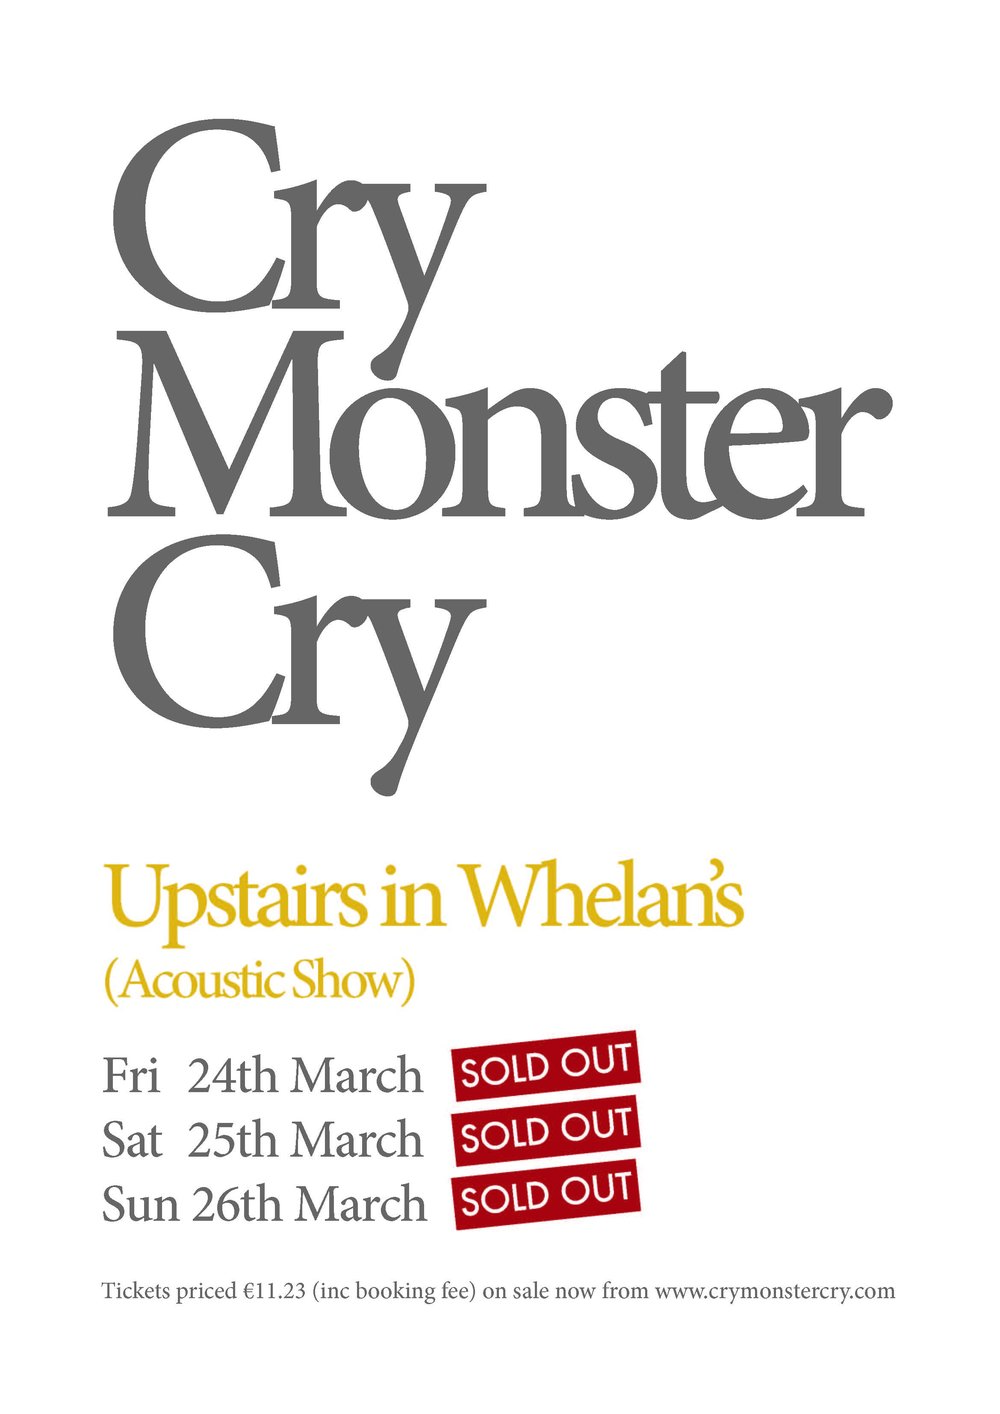 Cry Monster Cry sell out three dates in Whelan's - The third and final night will raise money for the charity,